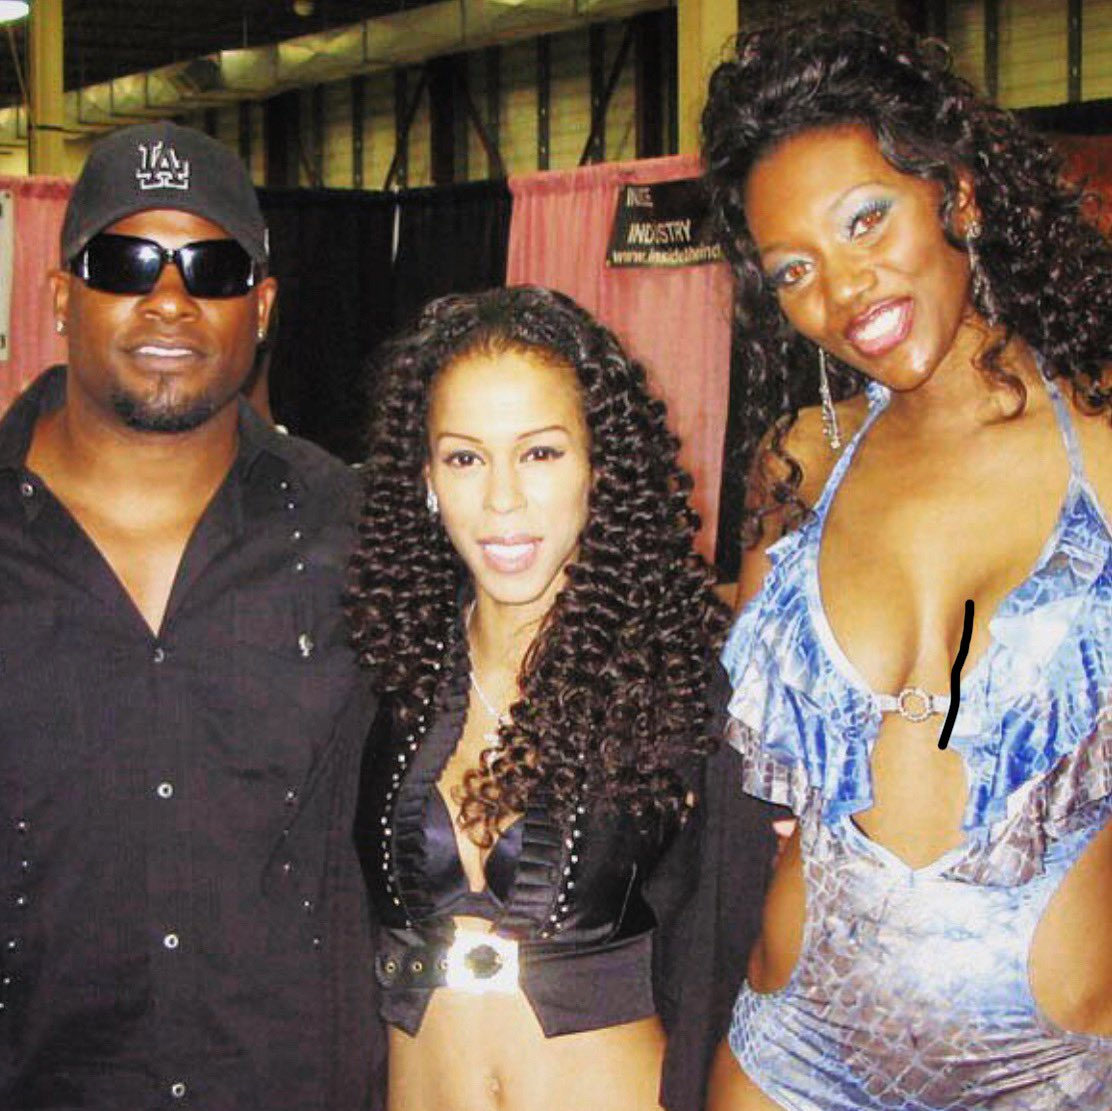 Legendary #TBT On deck with my besties @therealnyomibanxxx & @akamrmarcus at @exxxotica convention signing autographs for fans! #year2005 #fanlove #goodtimes #livingthelegend #mrmarcus #heatherhunter #nyomibanxxx #ogchroniclespic.twitter.com/SGfz3SpN9X